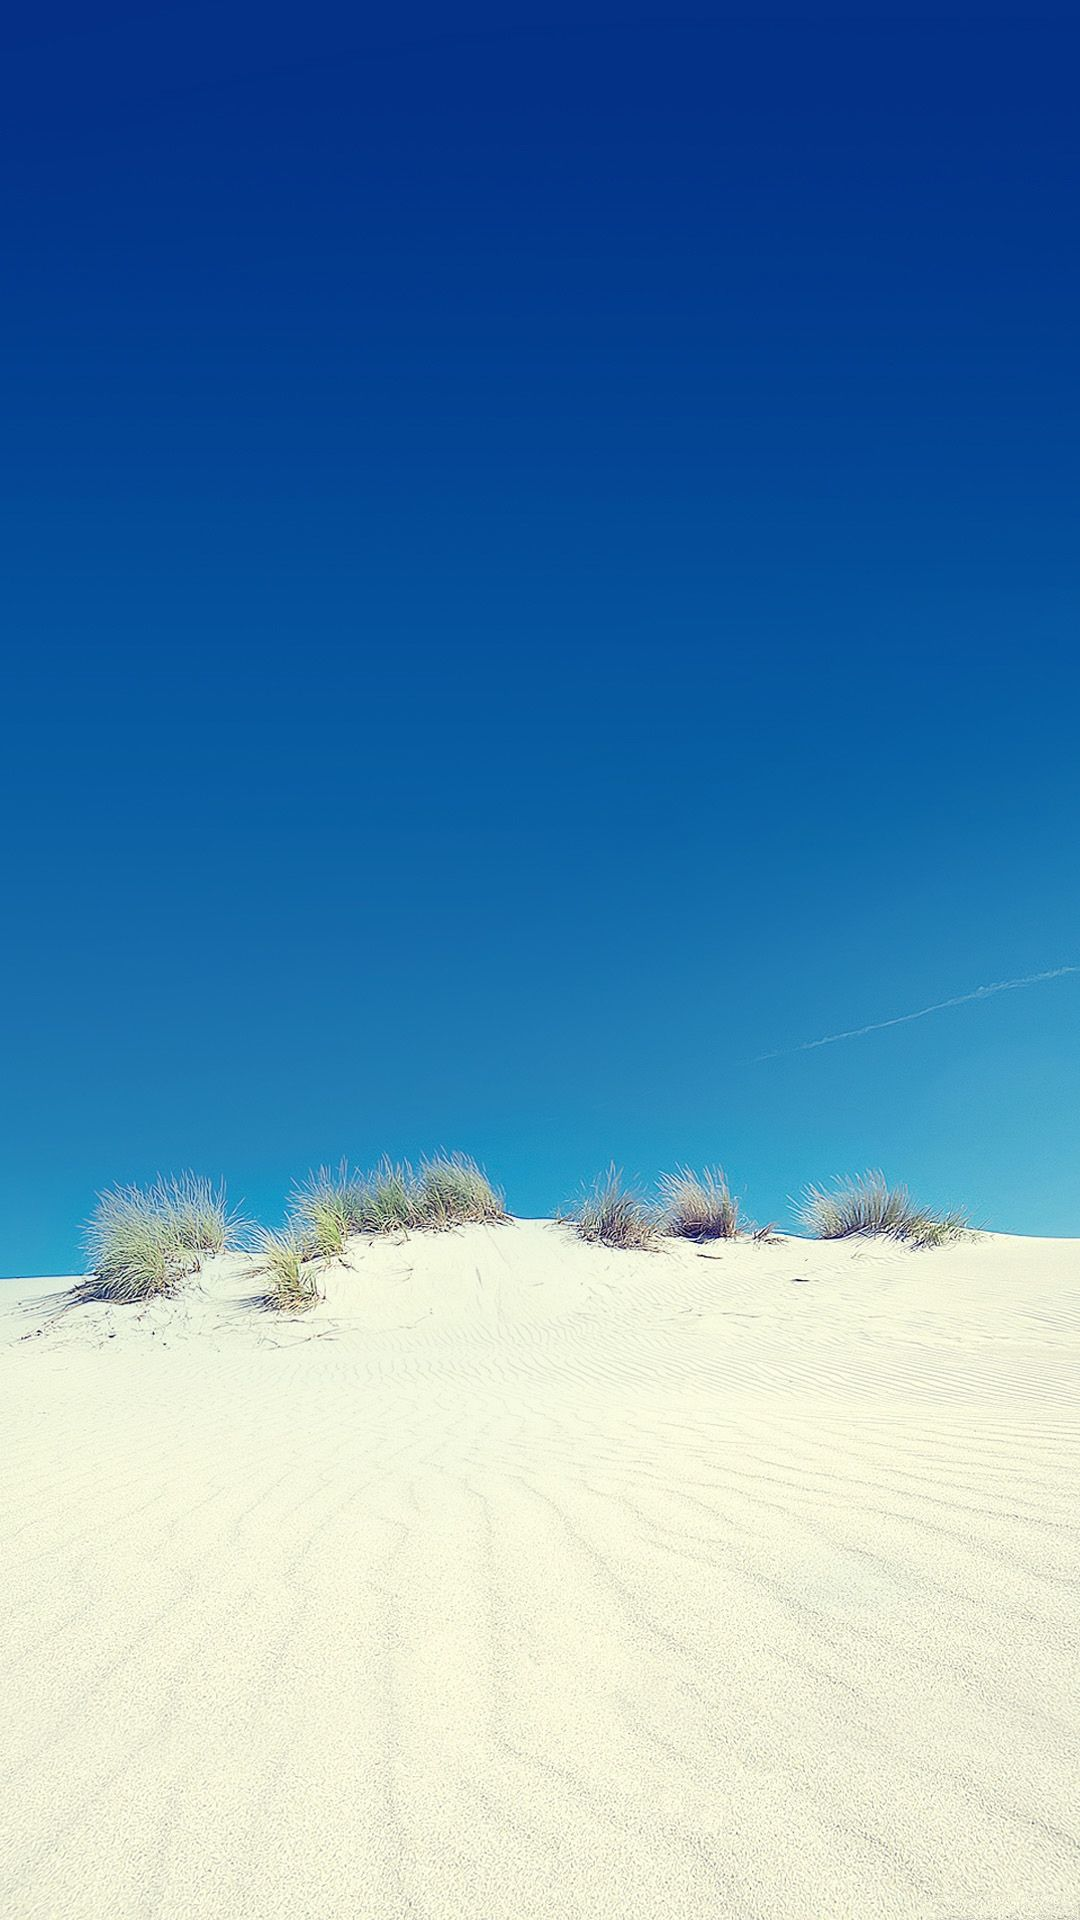 Desert Sand Dune And Clear Sky Android Wallpaper Places Spaces